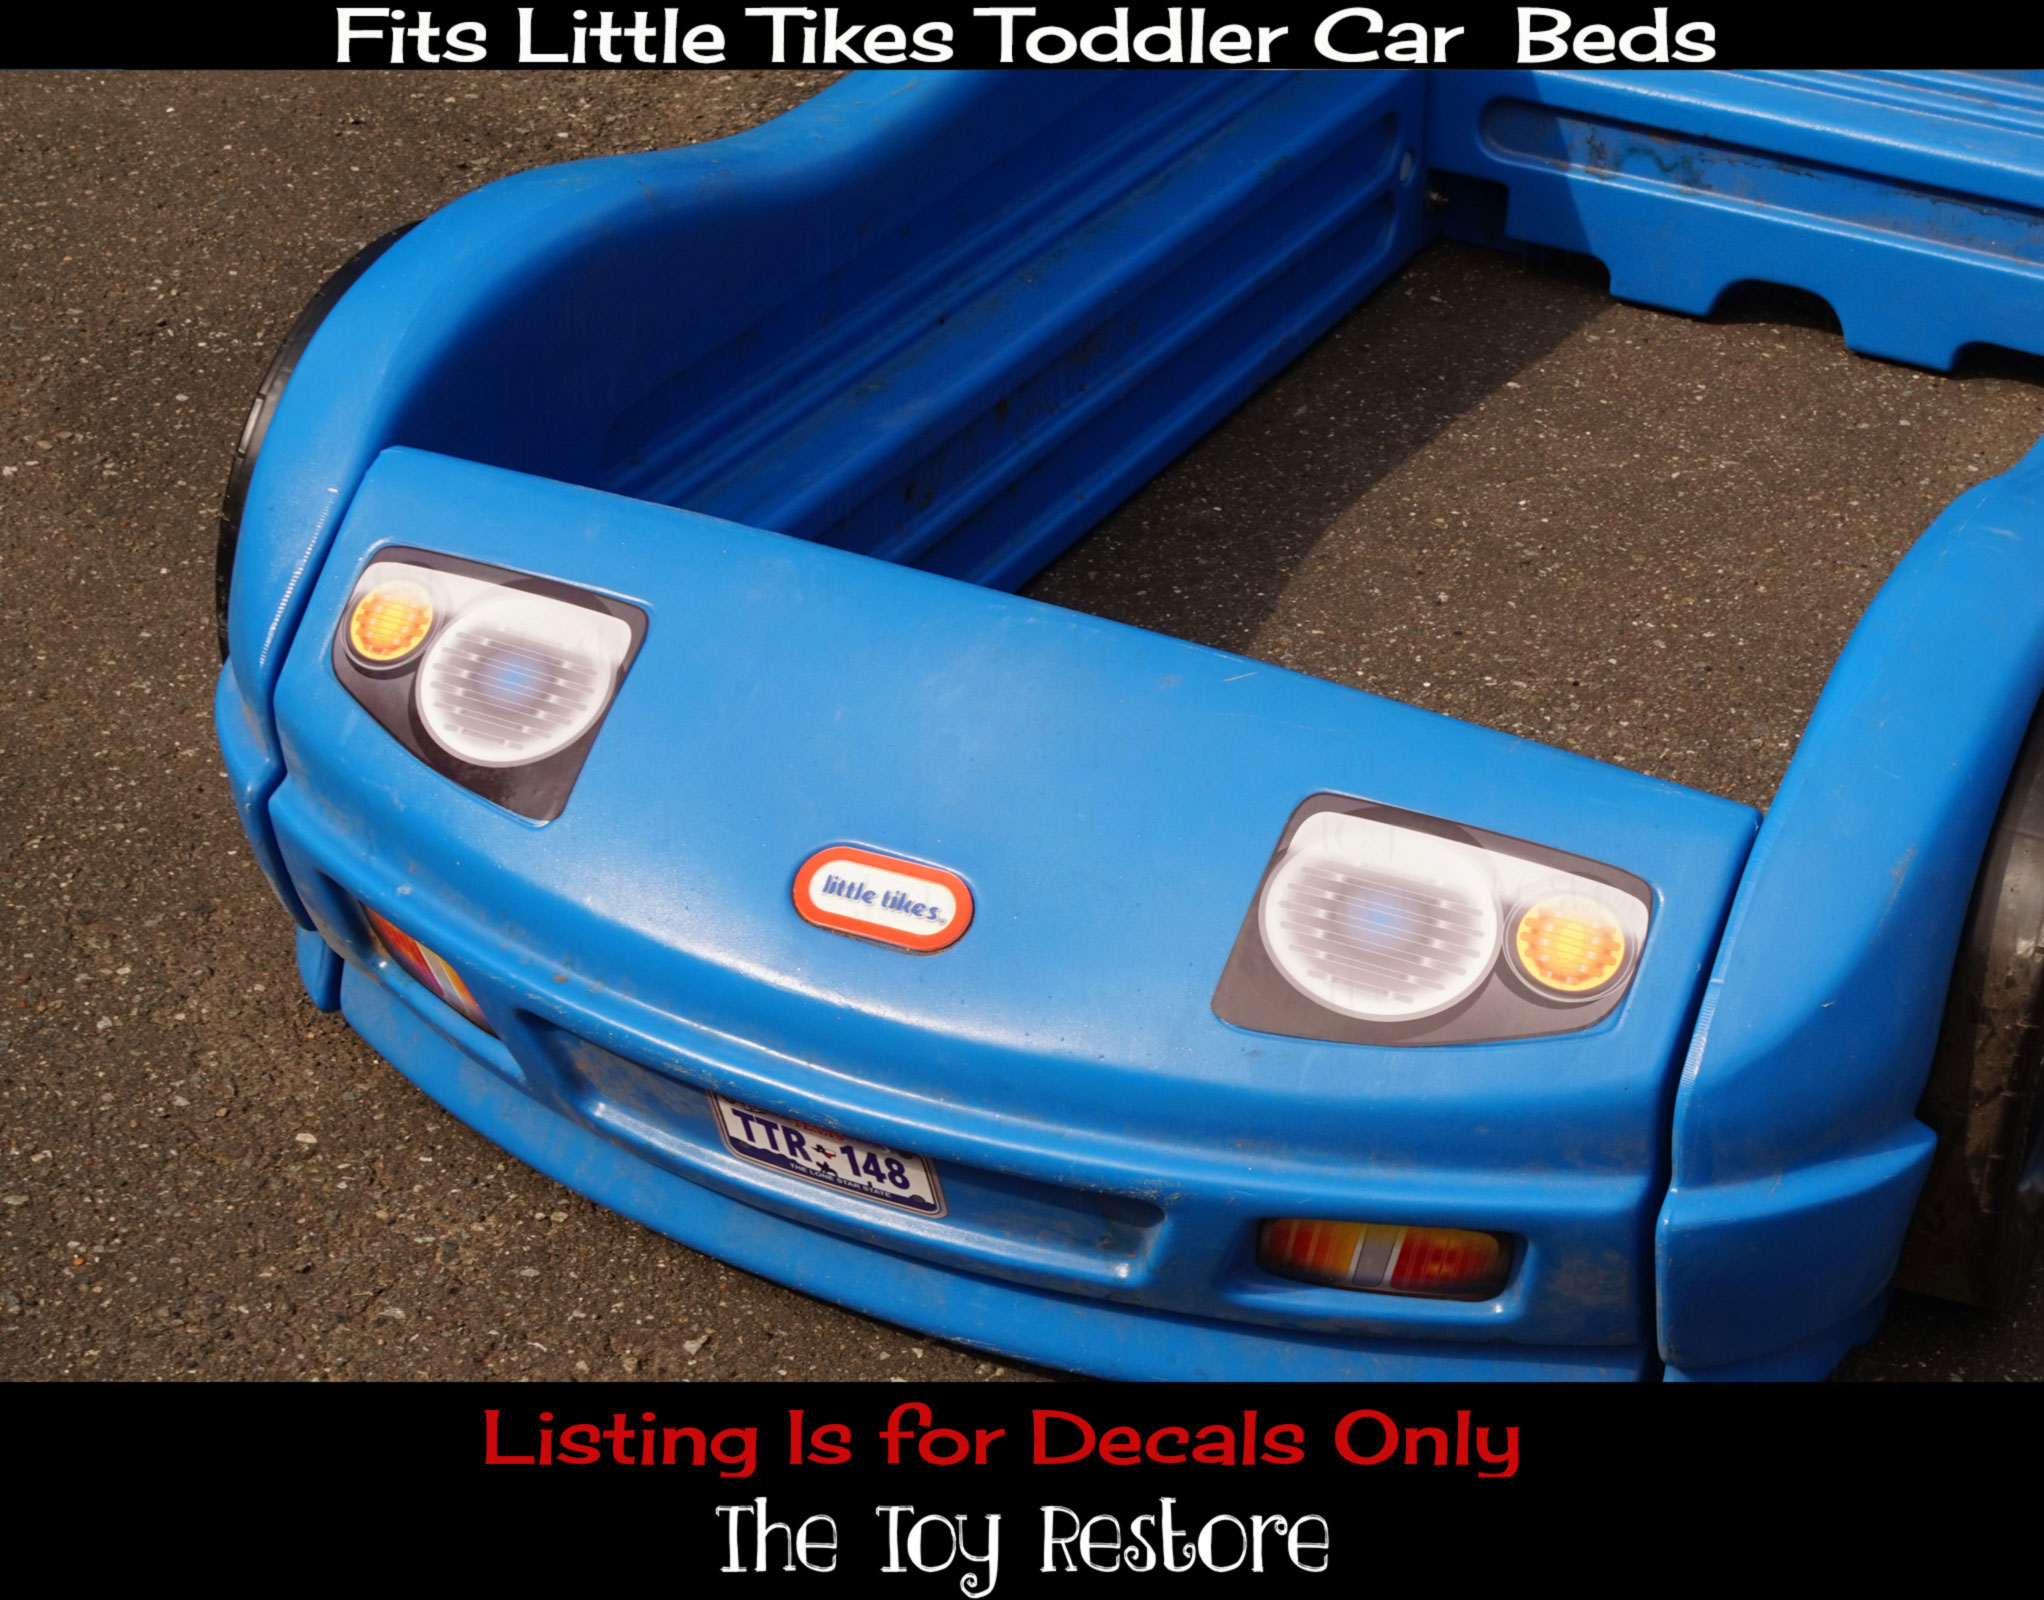 kids kitchen toys grohe faucets replacement decals fits little tikes blue toddler car bed ...